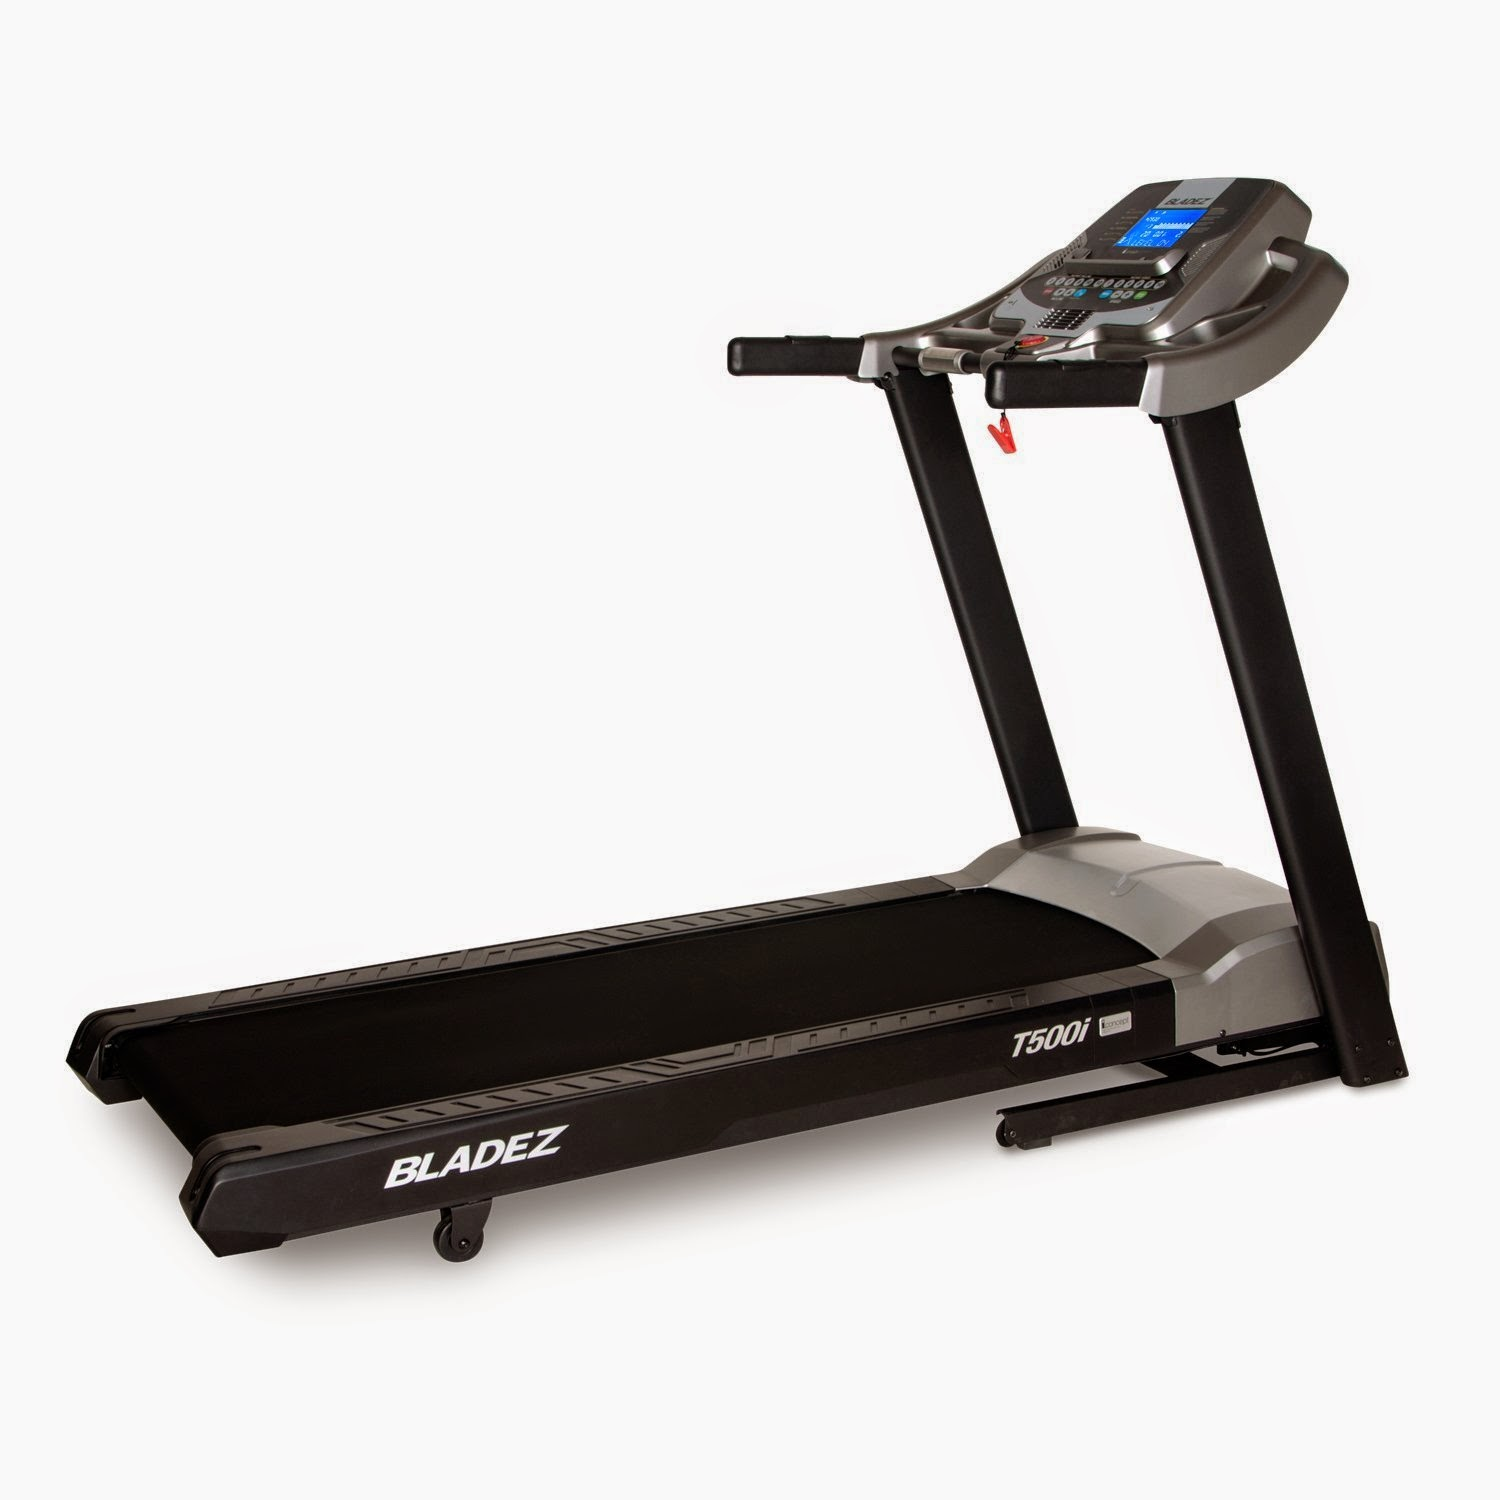 Bladez Fitness T500i Treadmill, review plus compare with T300i